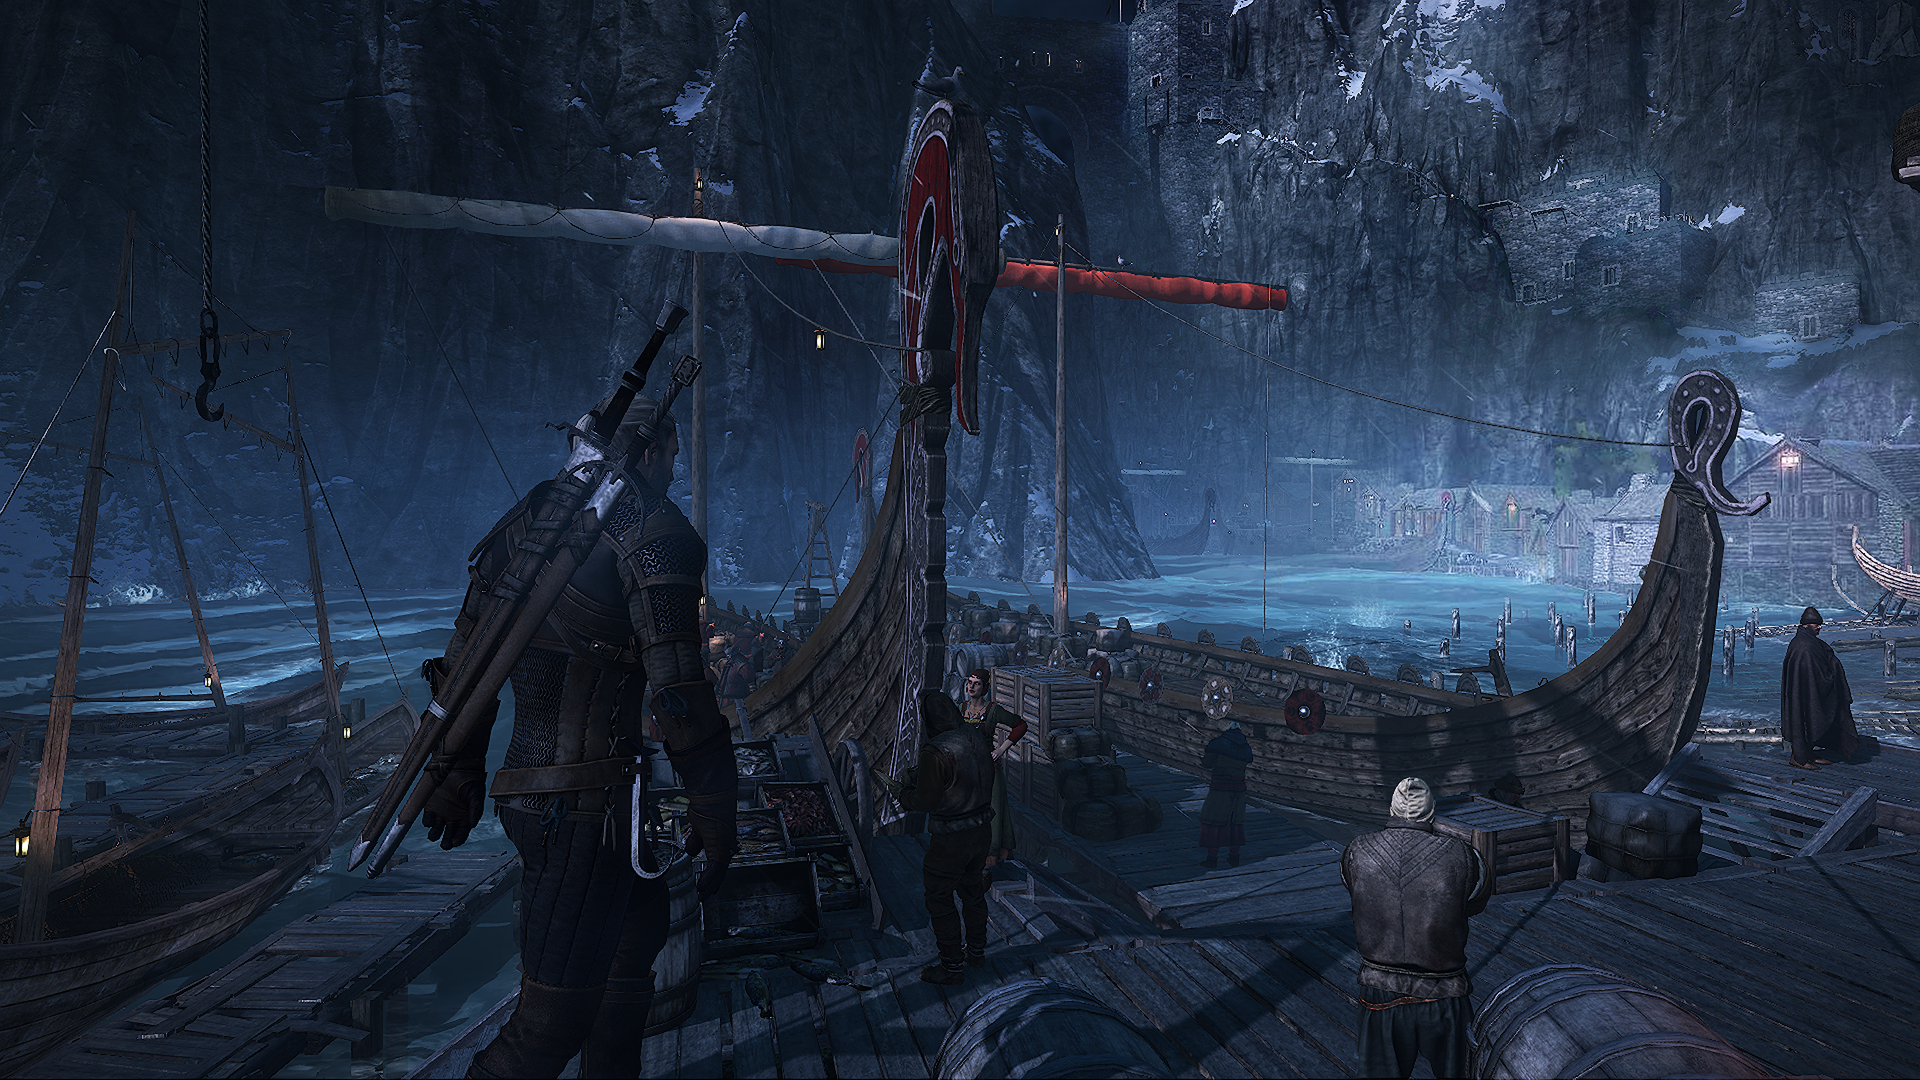 11_The_Witcher_3_Wild_Hunt_Docks-free-hd-wallpapers